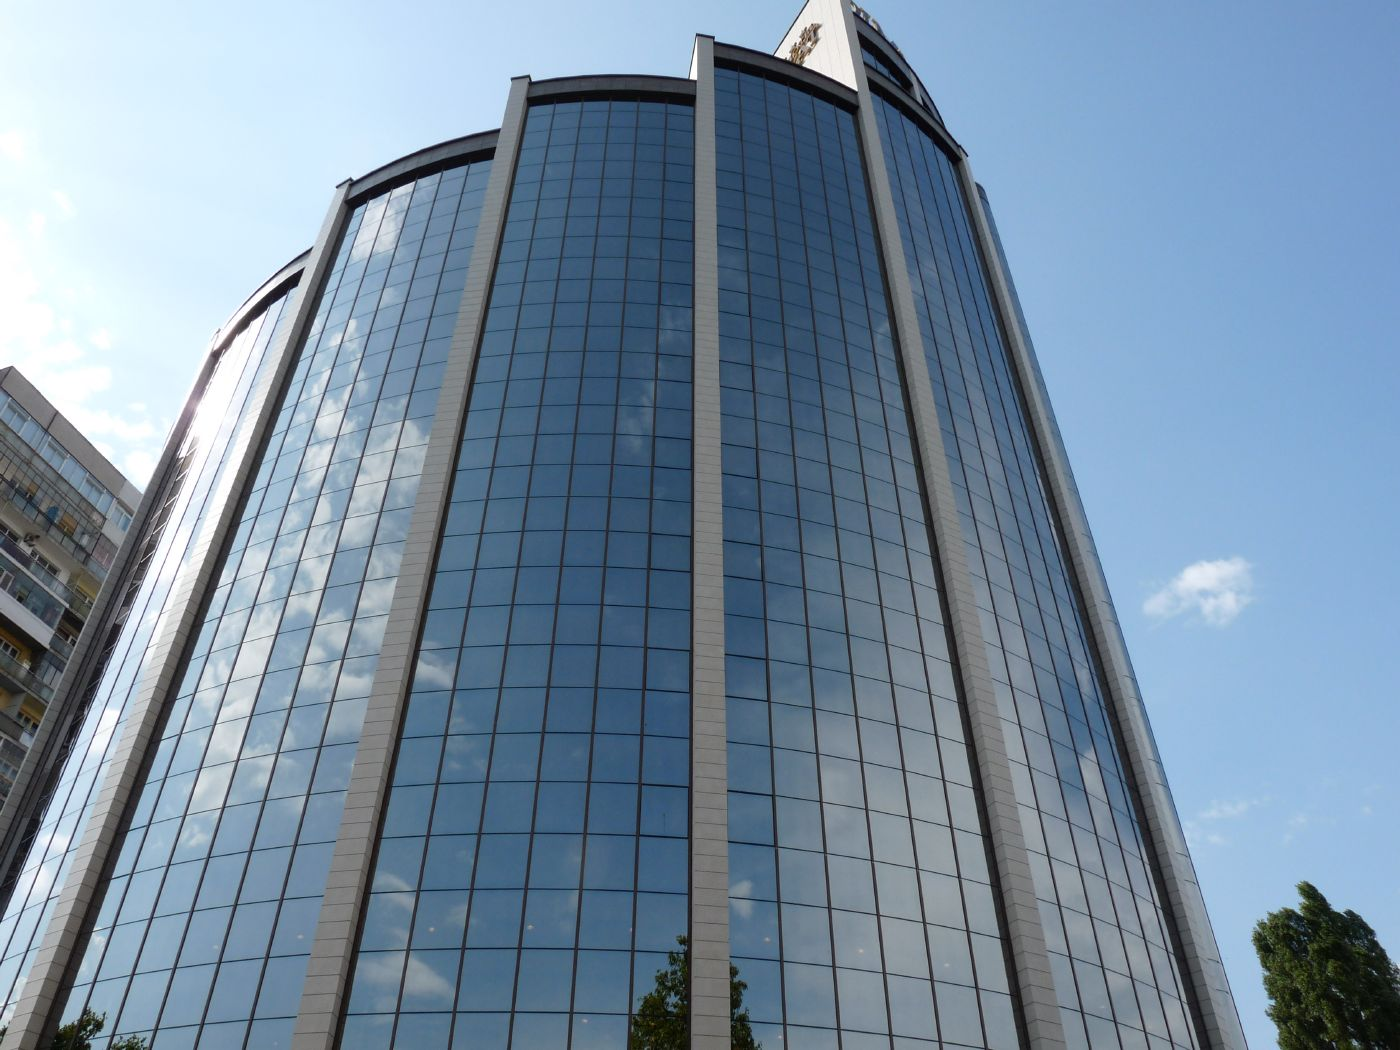 modern-architecture-in-the-summer-capital-of-Bulgaria